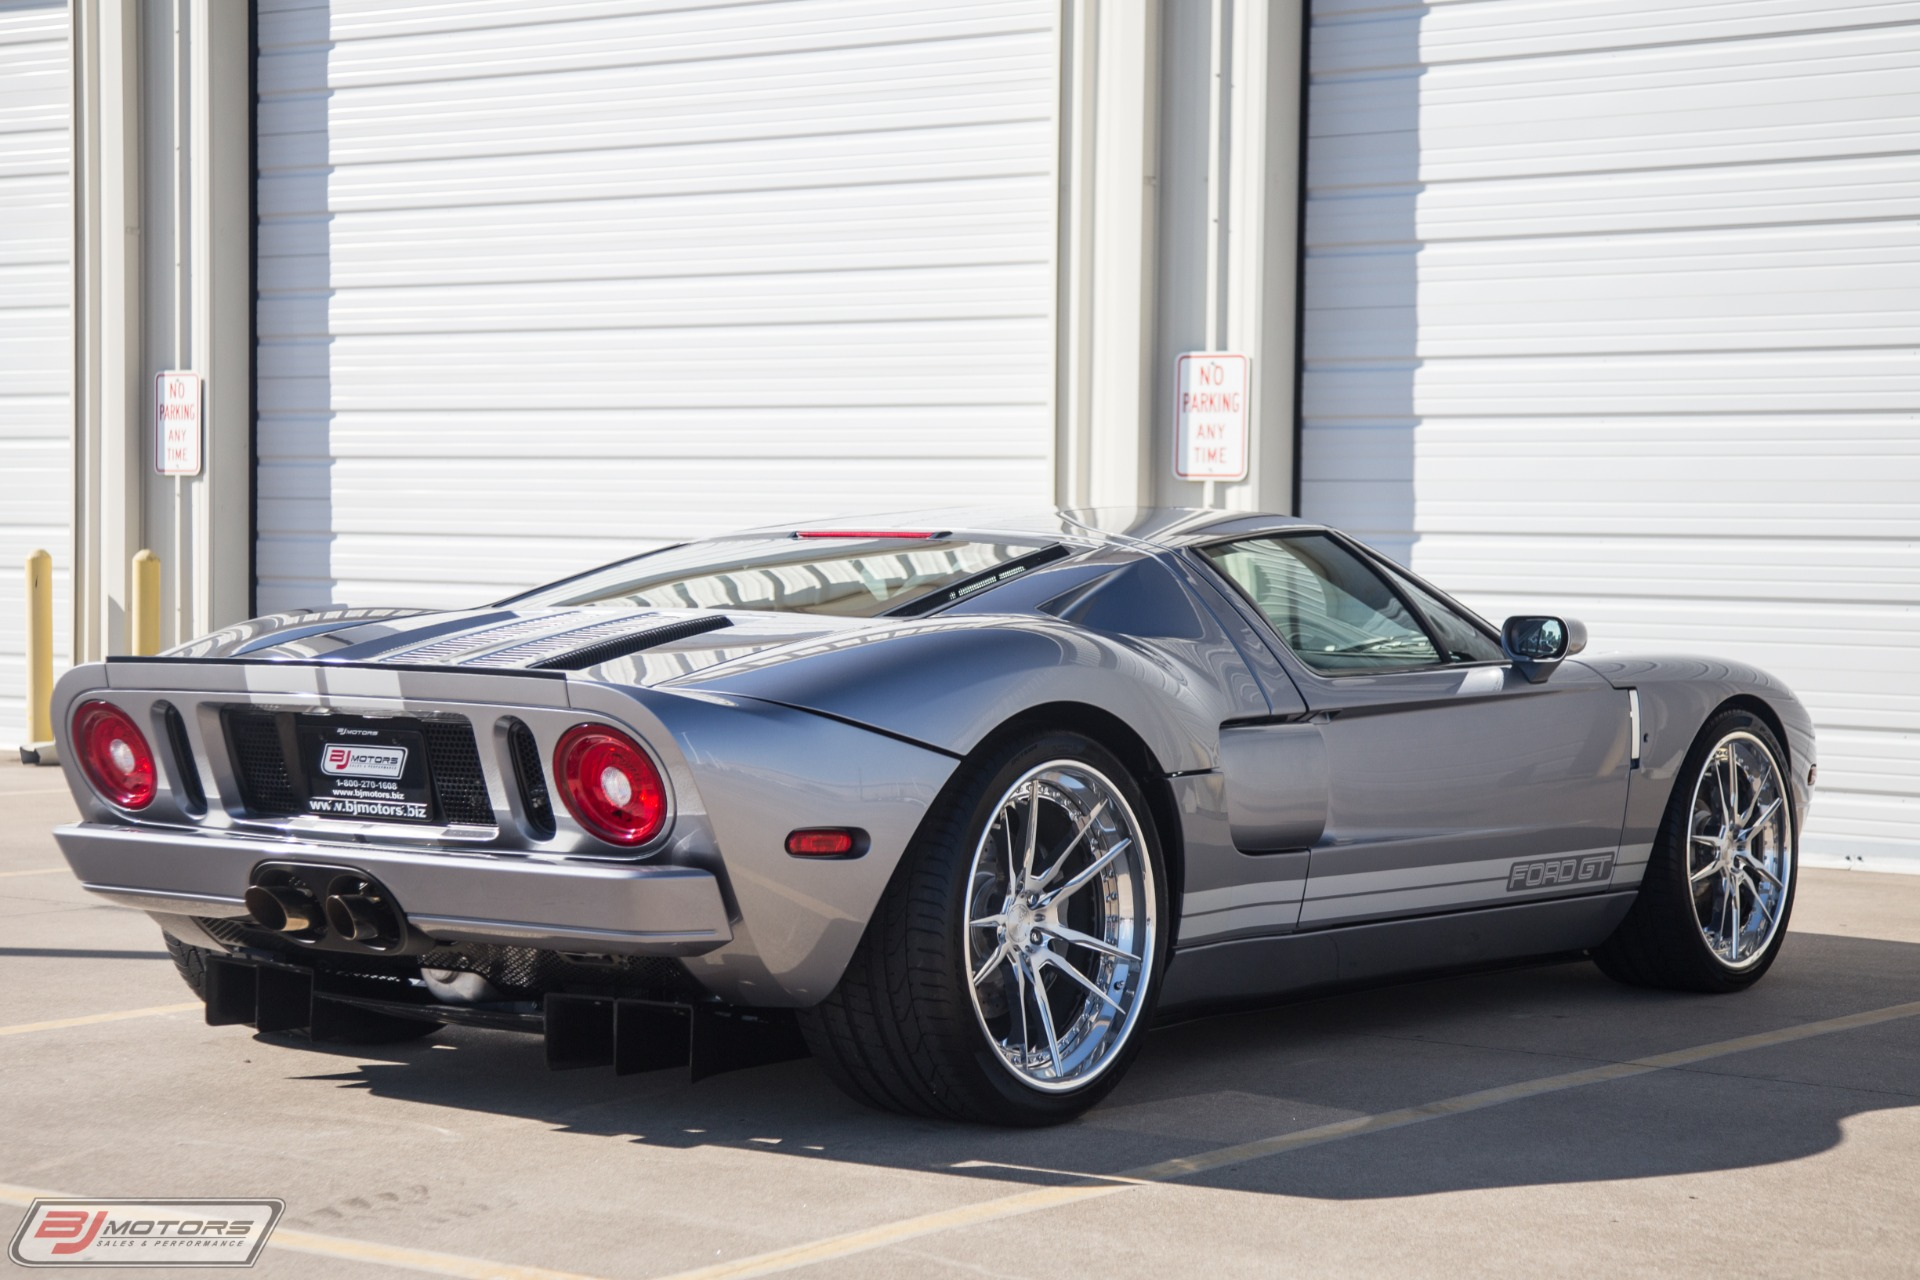 Used-2006-Ford-GT-Tungsten-4-Option-Car-with-Low-Miles